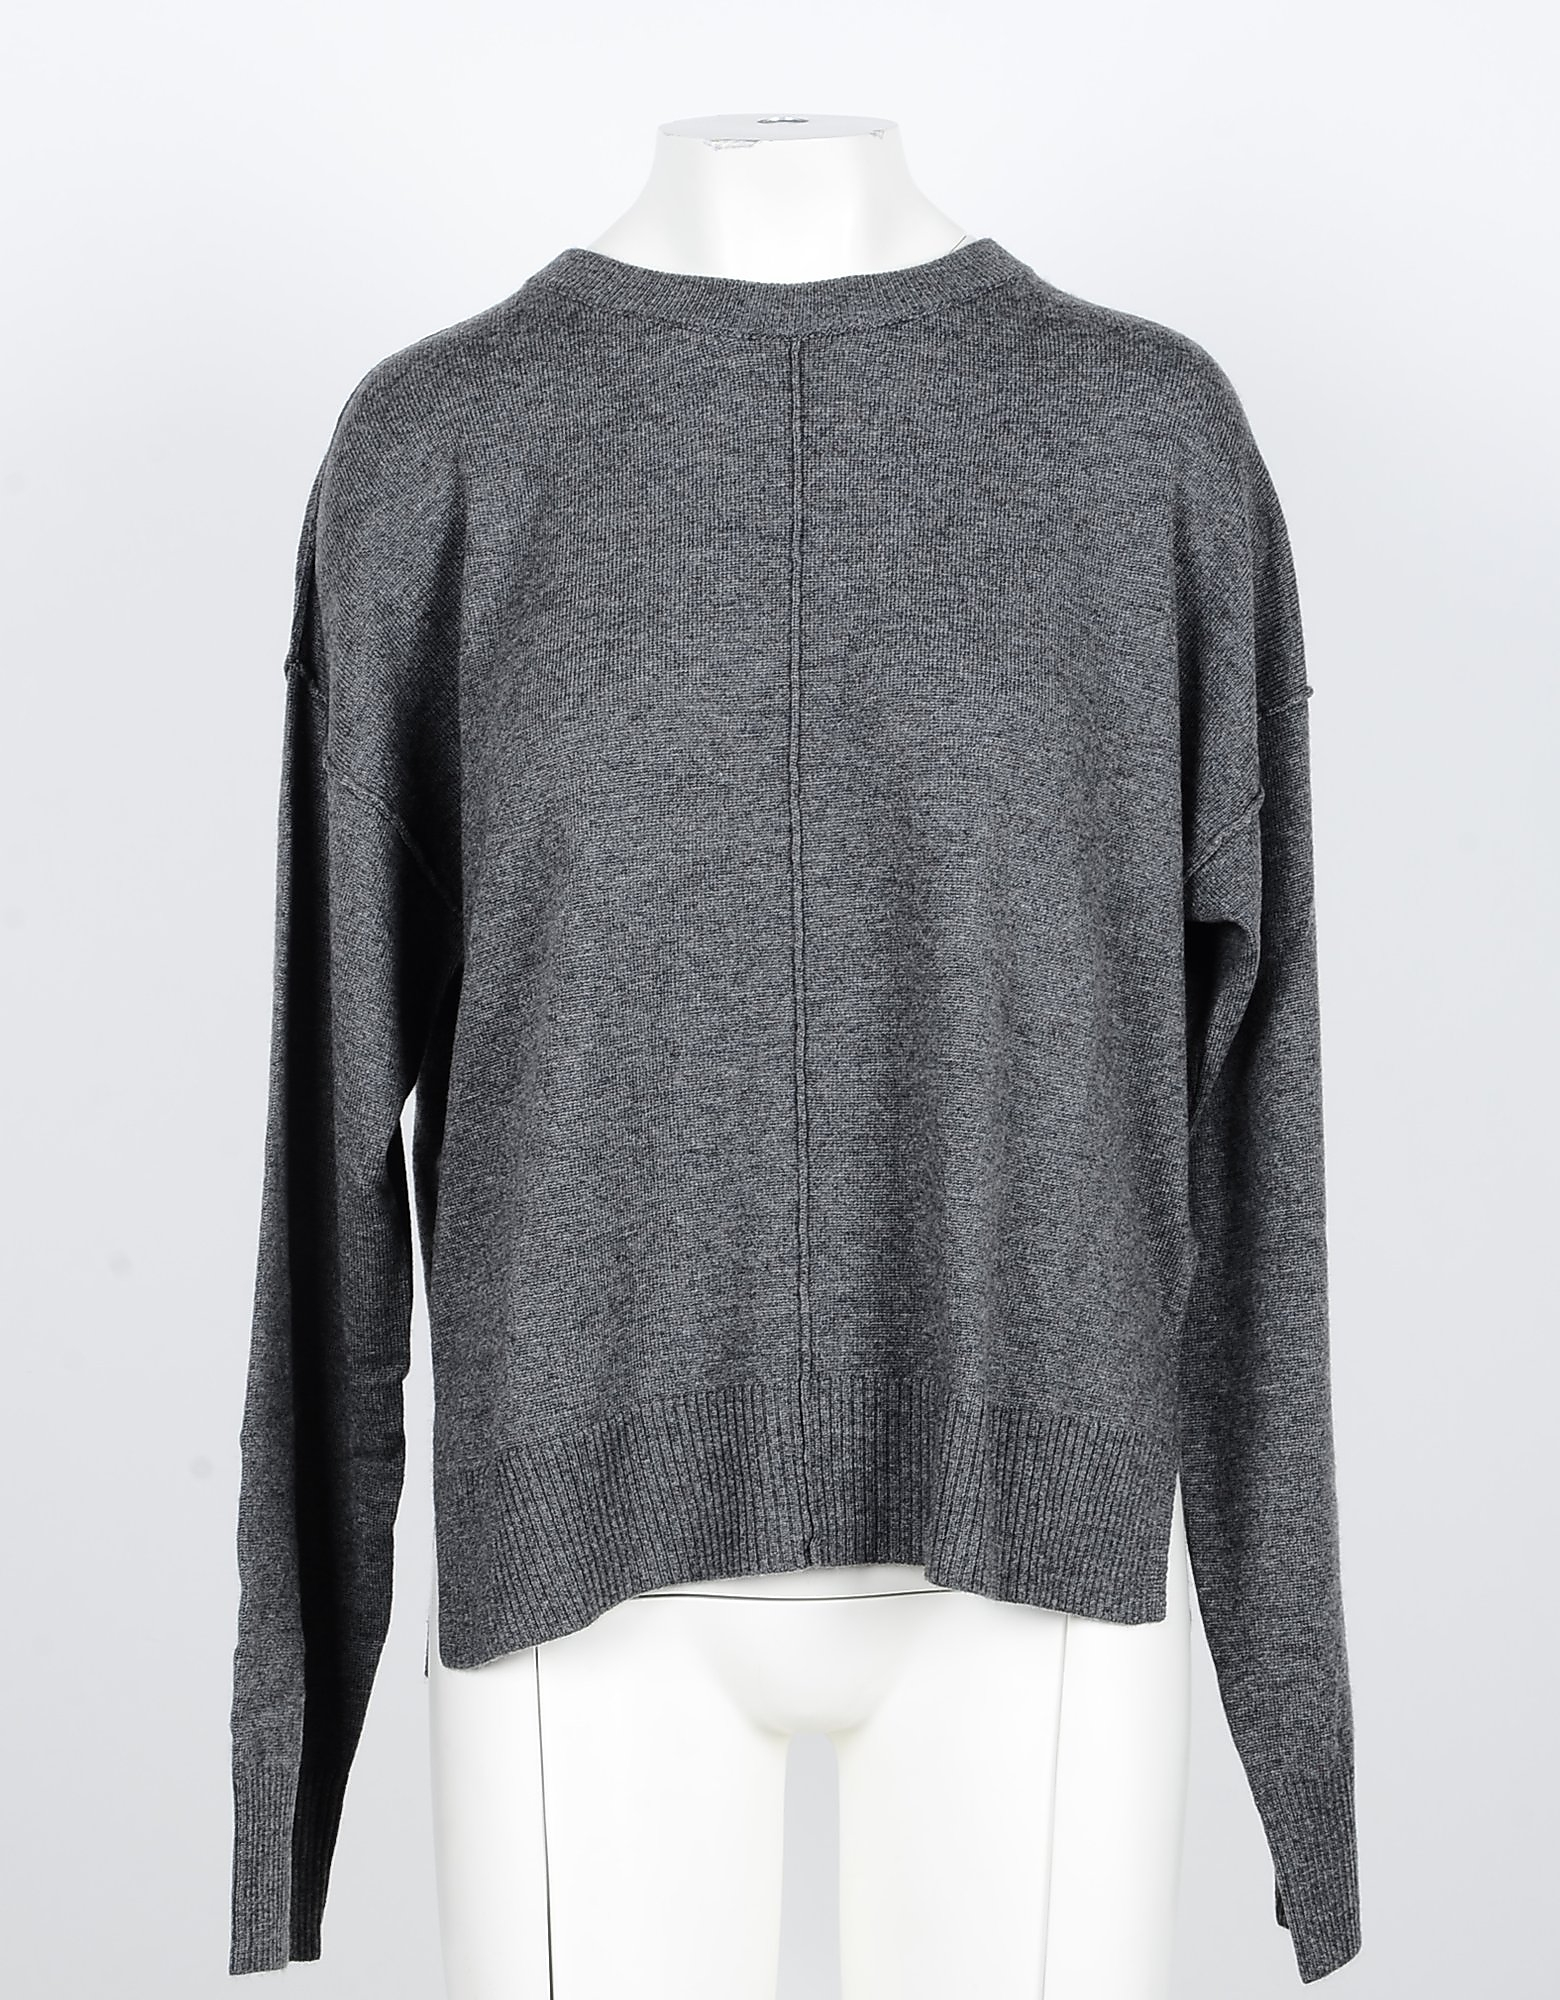 N.O.W. Designer Knitwear, Anthracite Cashmere and Wool Women's Sweater